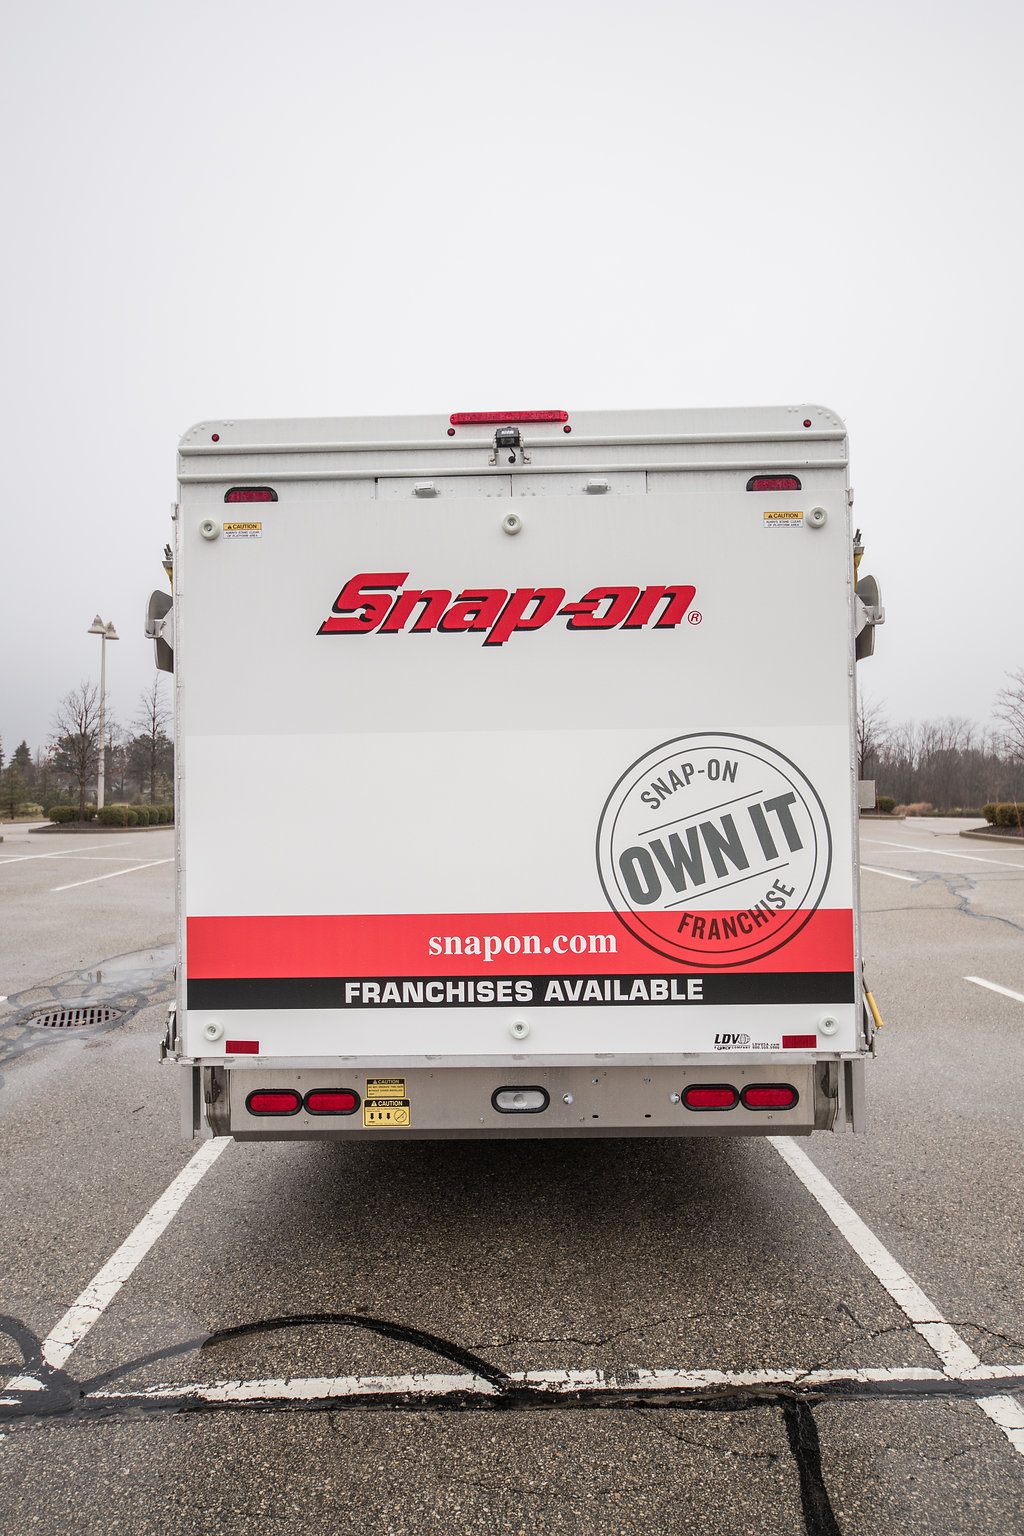 Snap On Truck : truck, Snap-on, Tools, Franchise, Transfer